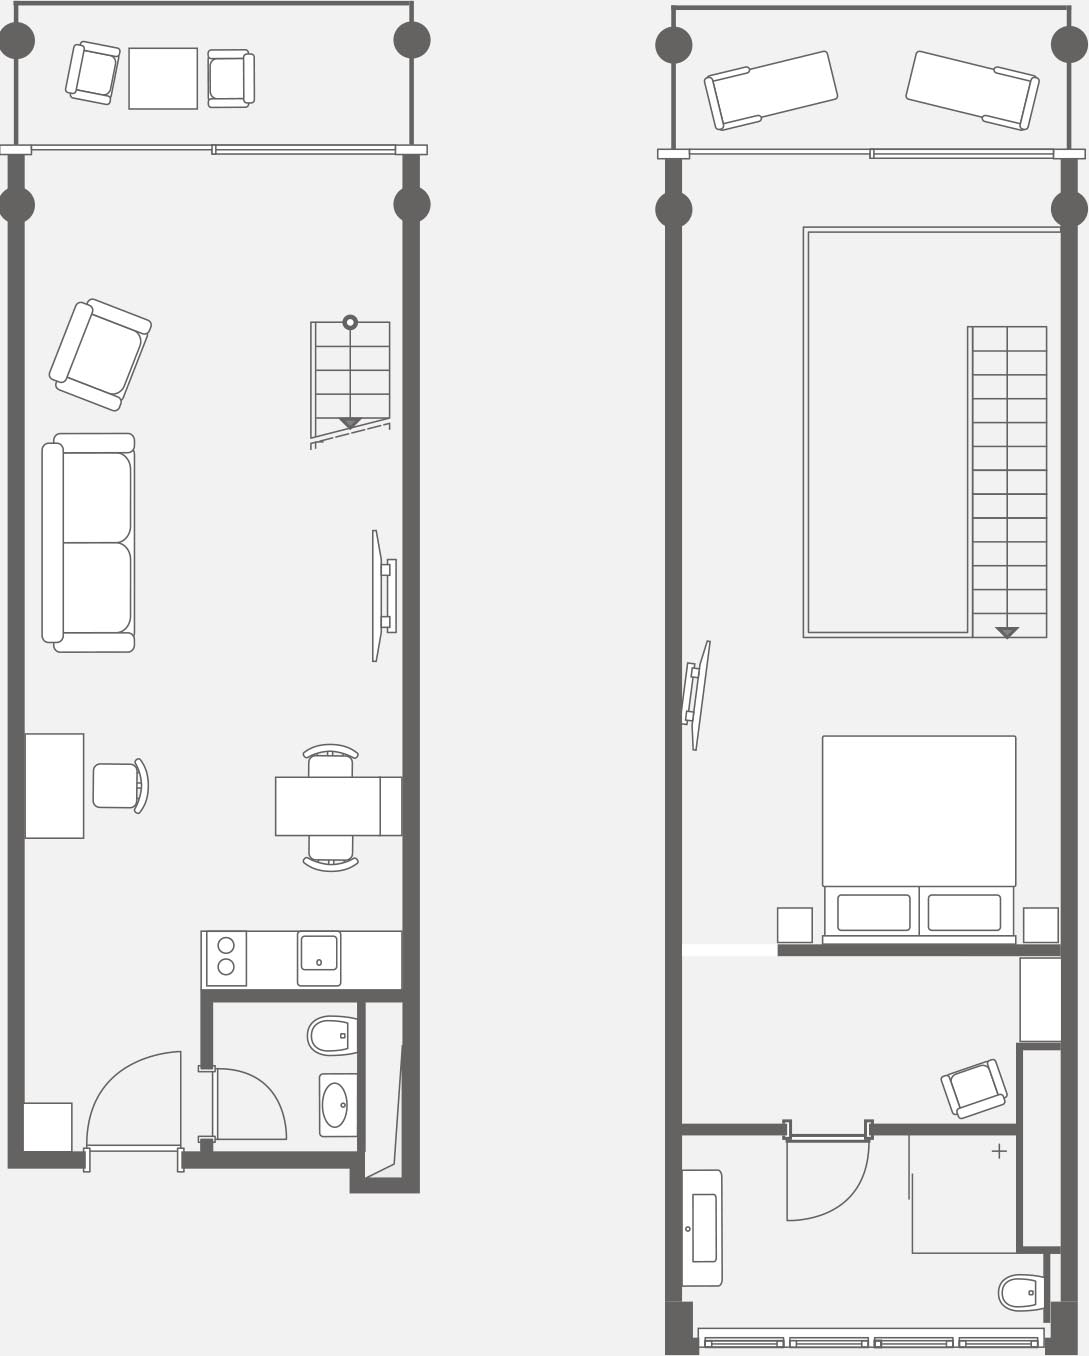 Apartment on Rügen for two people - floor plan